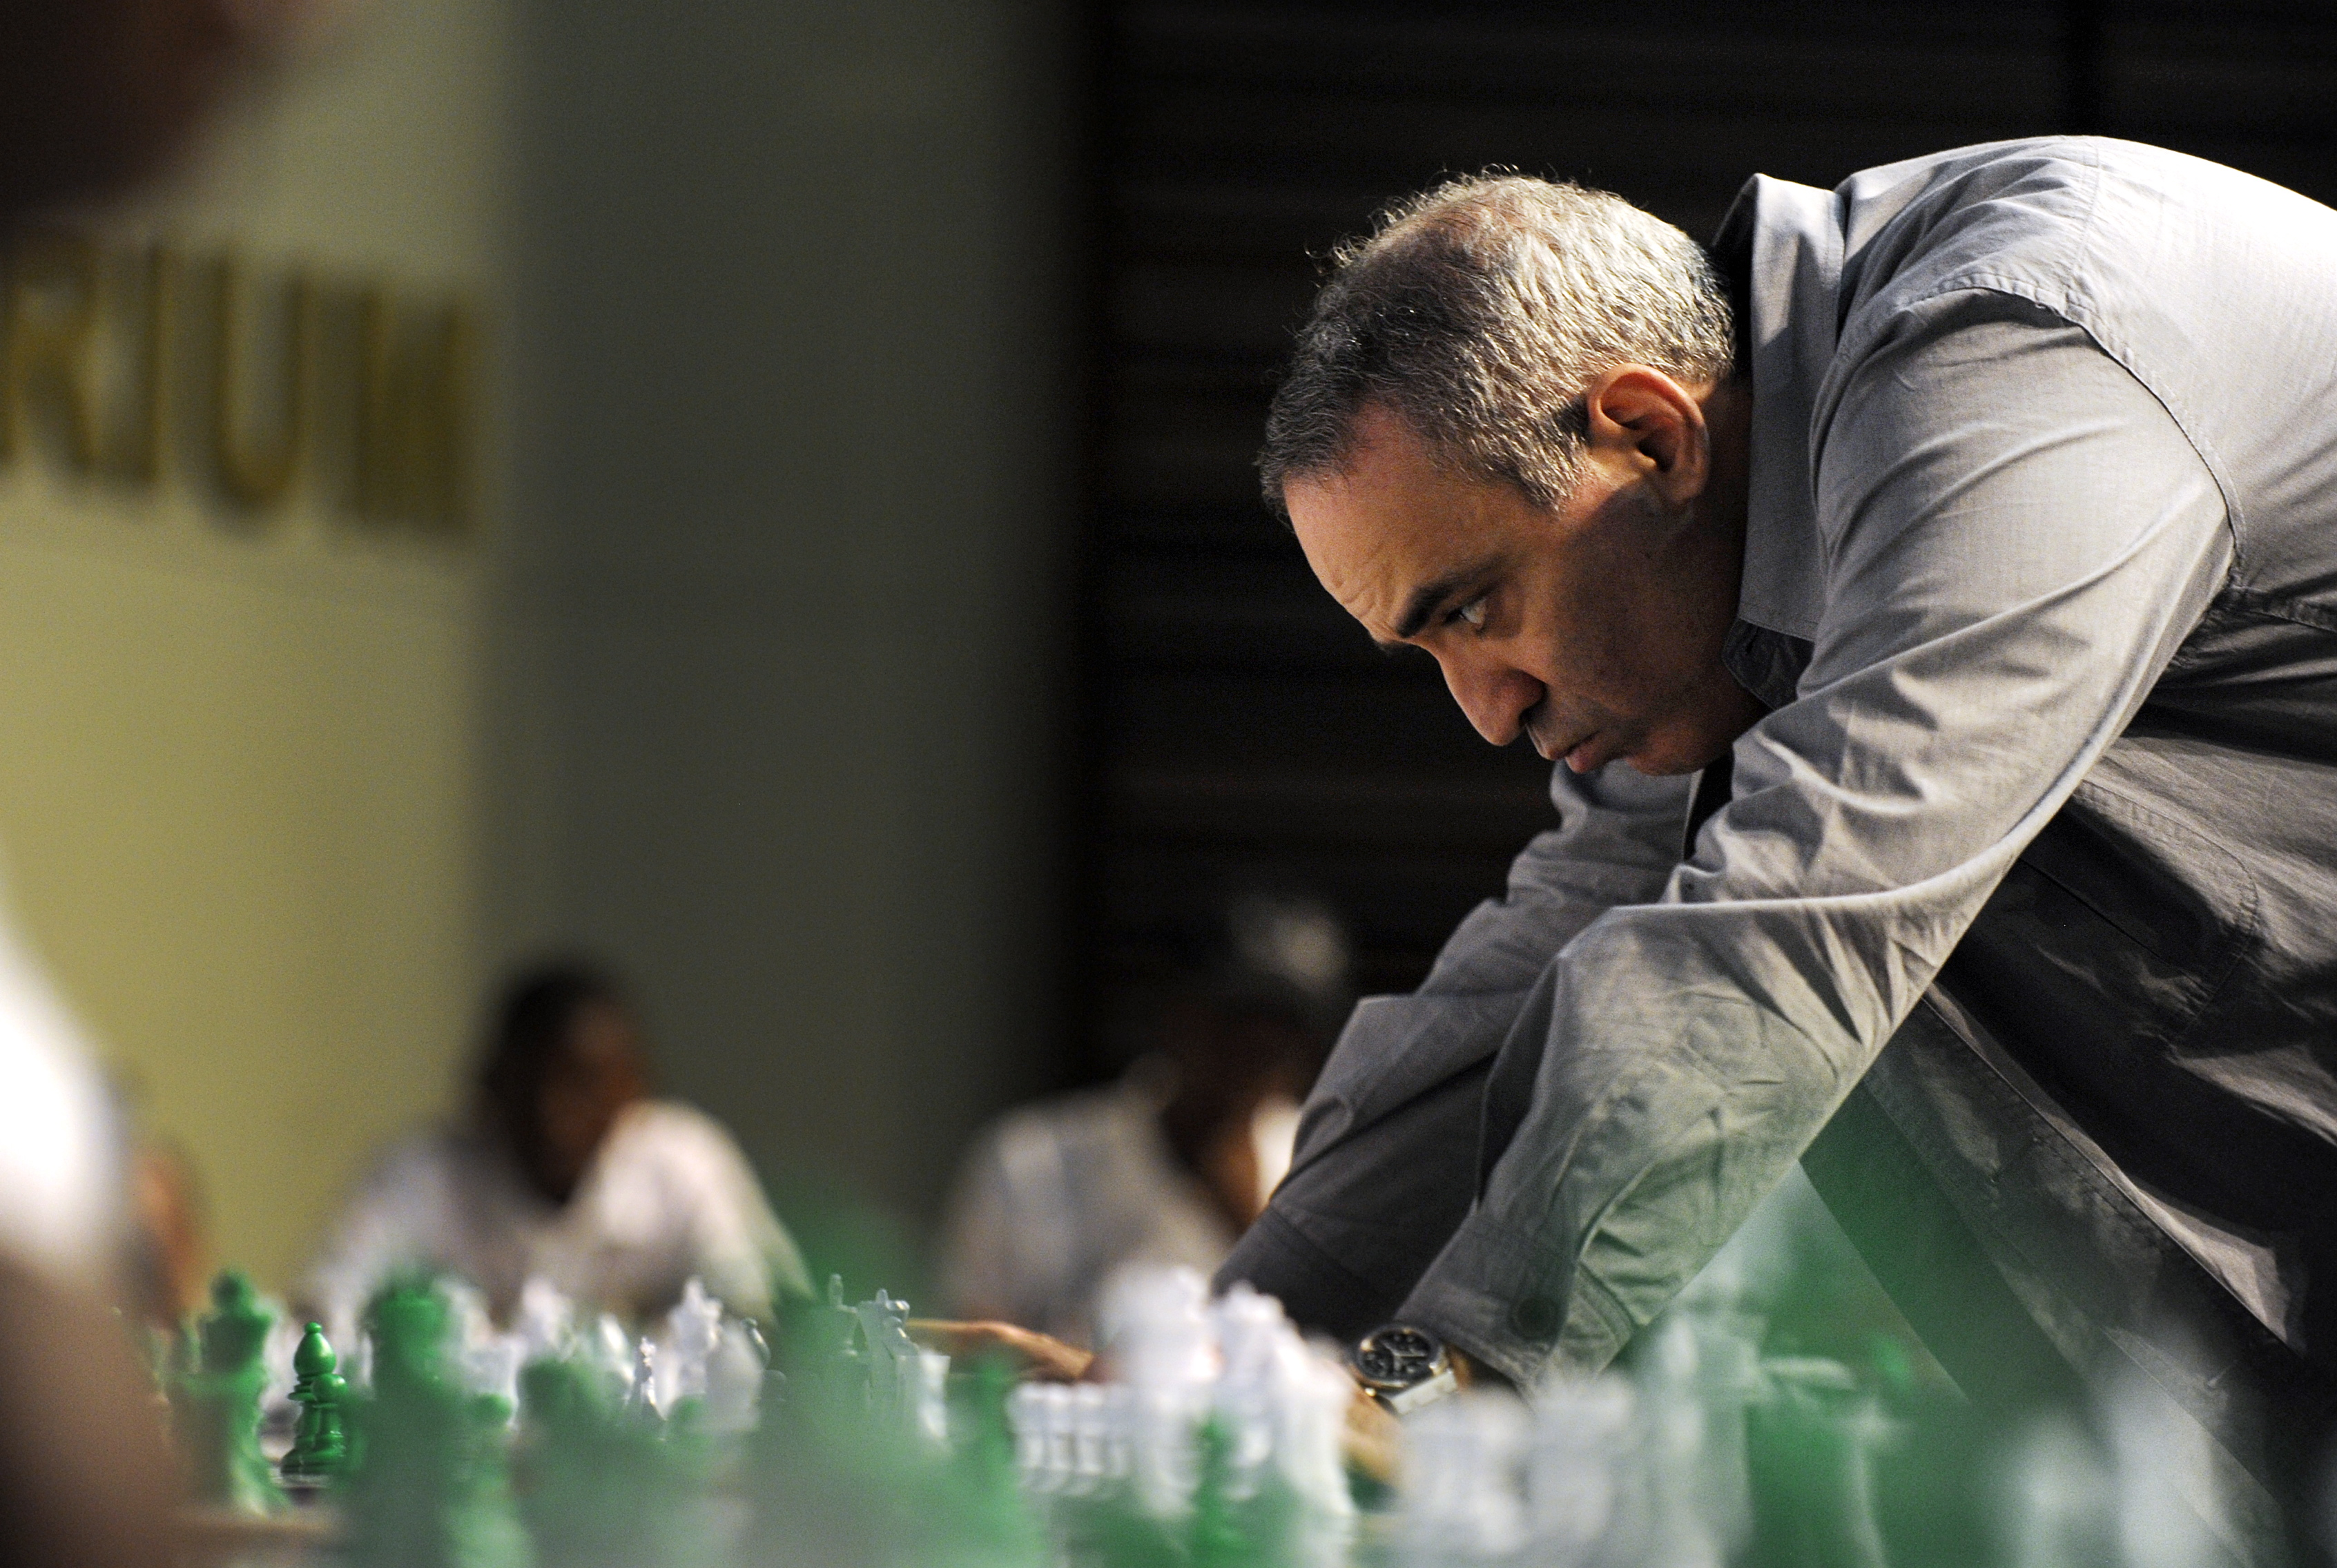 Former World Chess Champion Garry Kasparov plays a game of chess with school children on March 25, 2012 in Pretoria, South Africa.